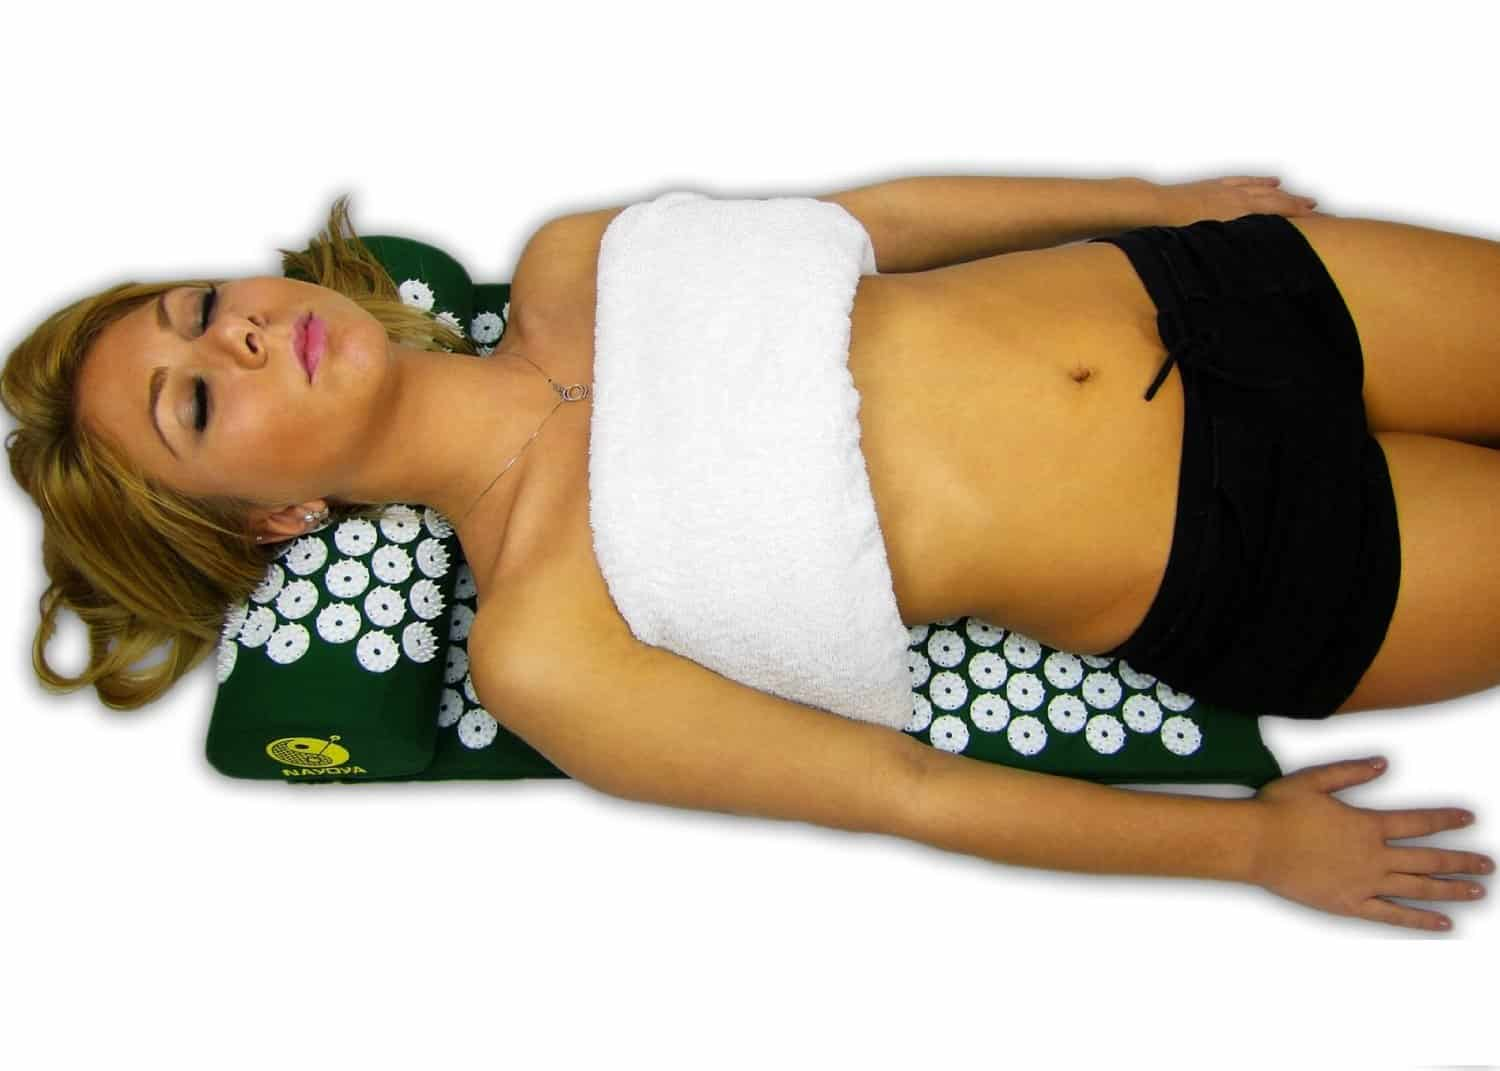 Nayoya Acupressure Mat  How to Get Rid of Back Pain